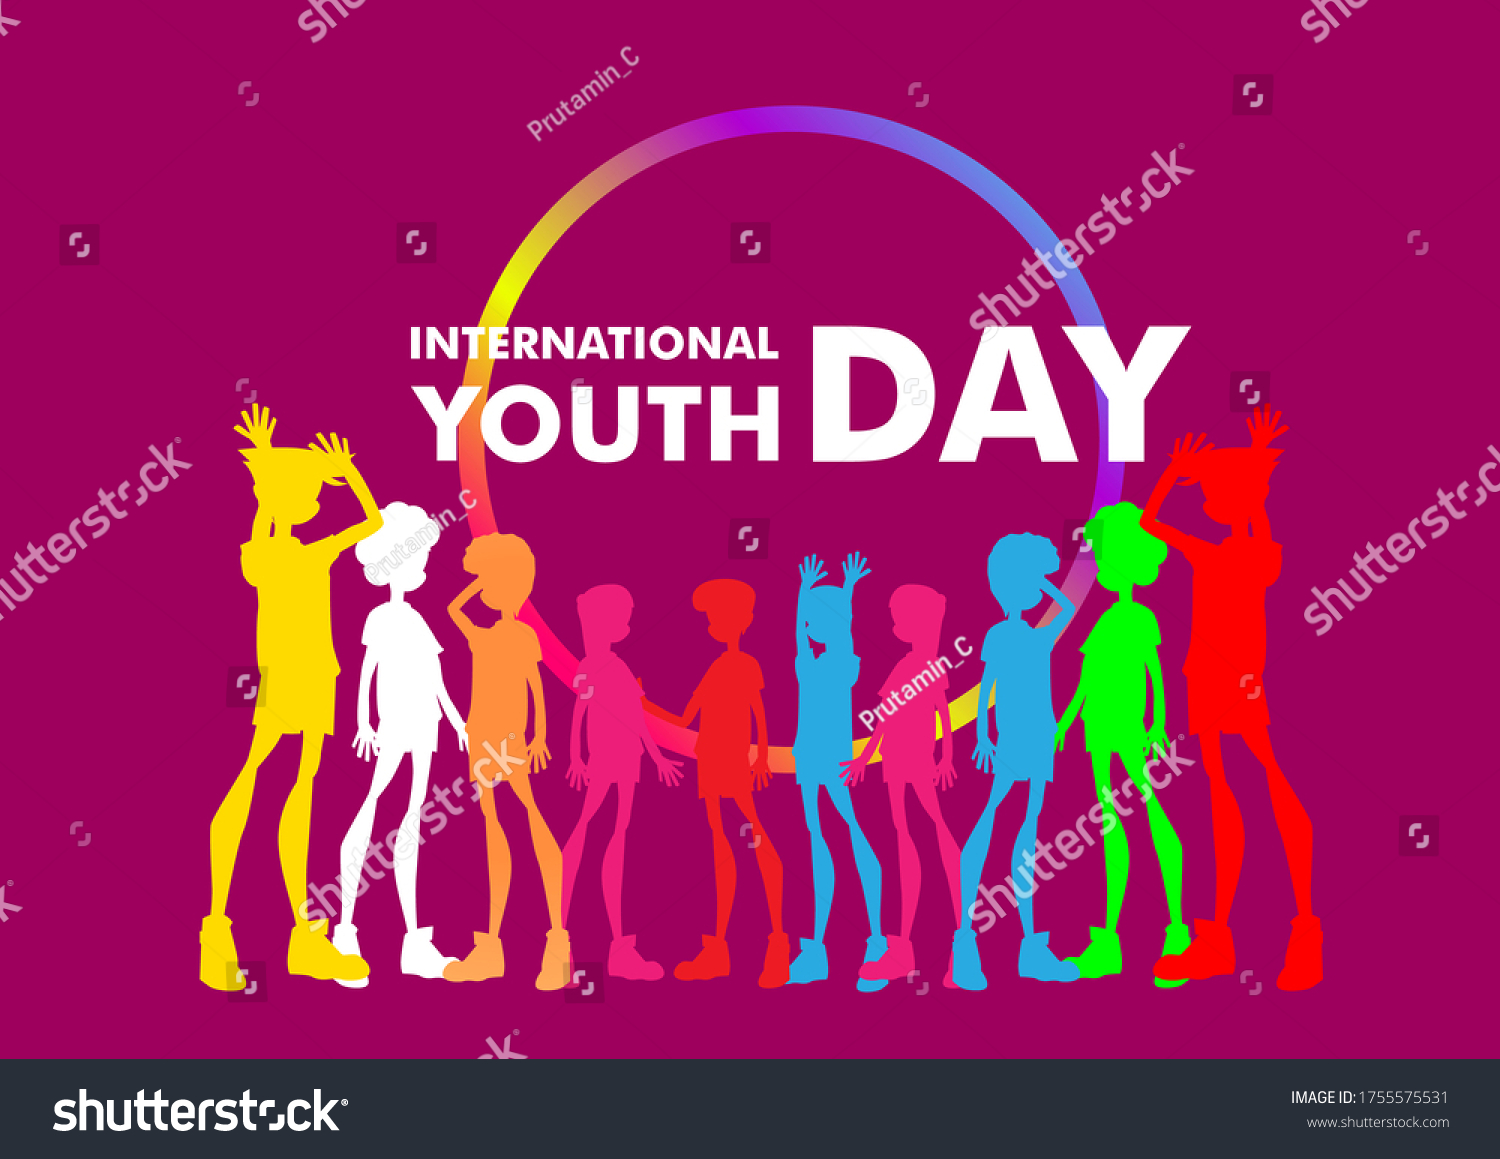 International youth day. August 12. Campaign vector illustration with colorful crowd people for friendship symbol